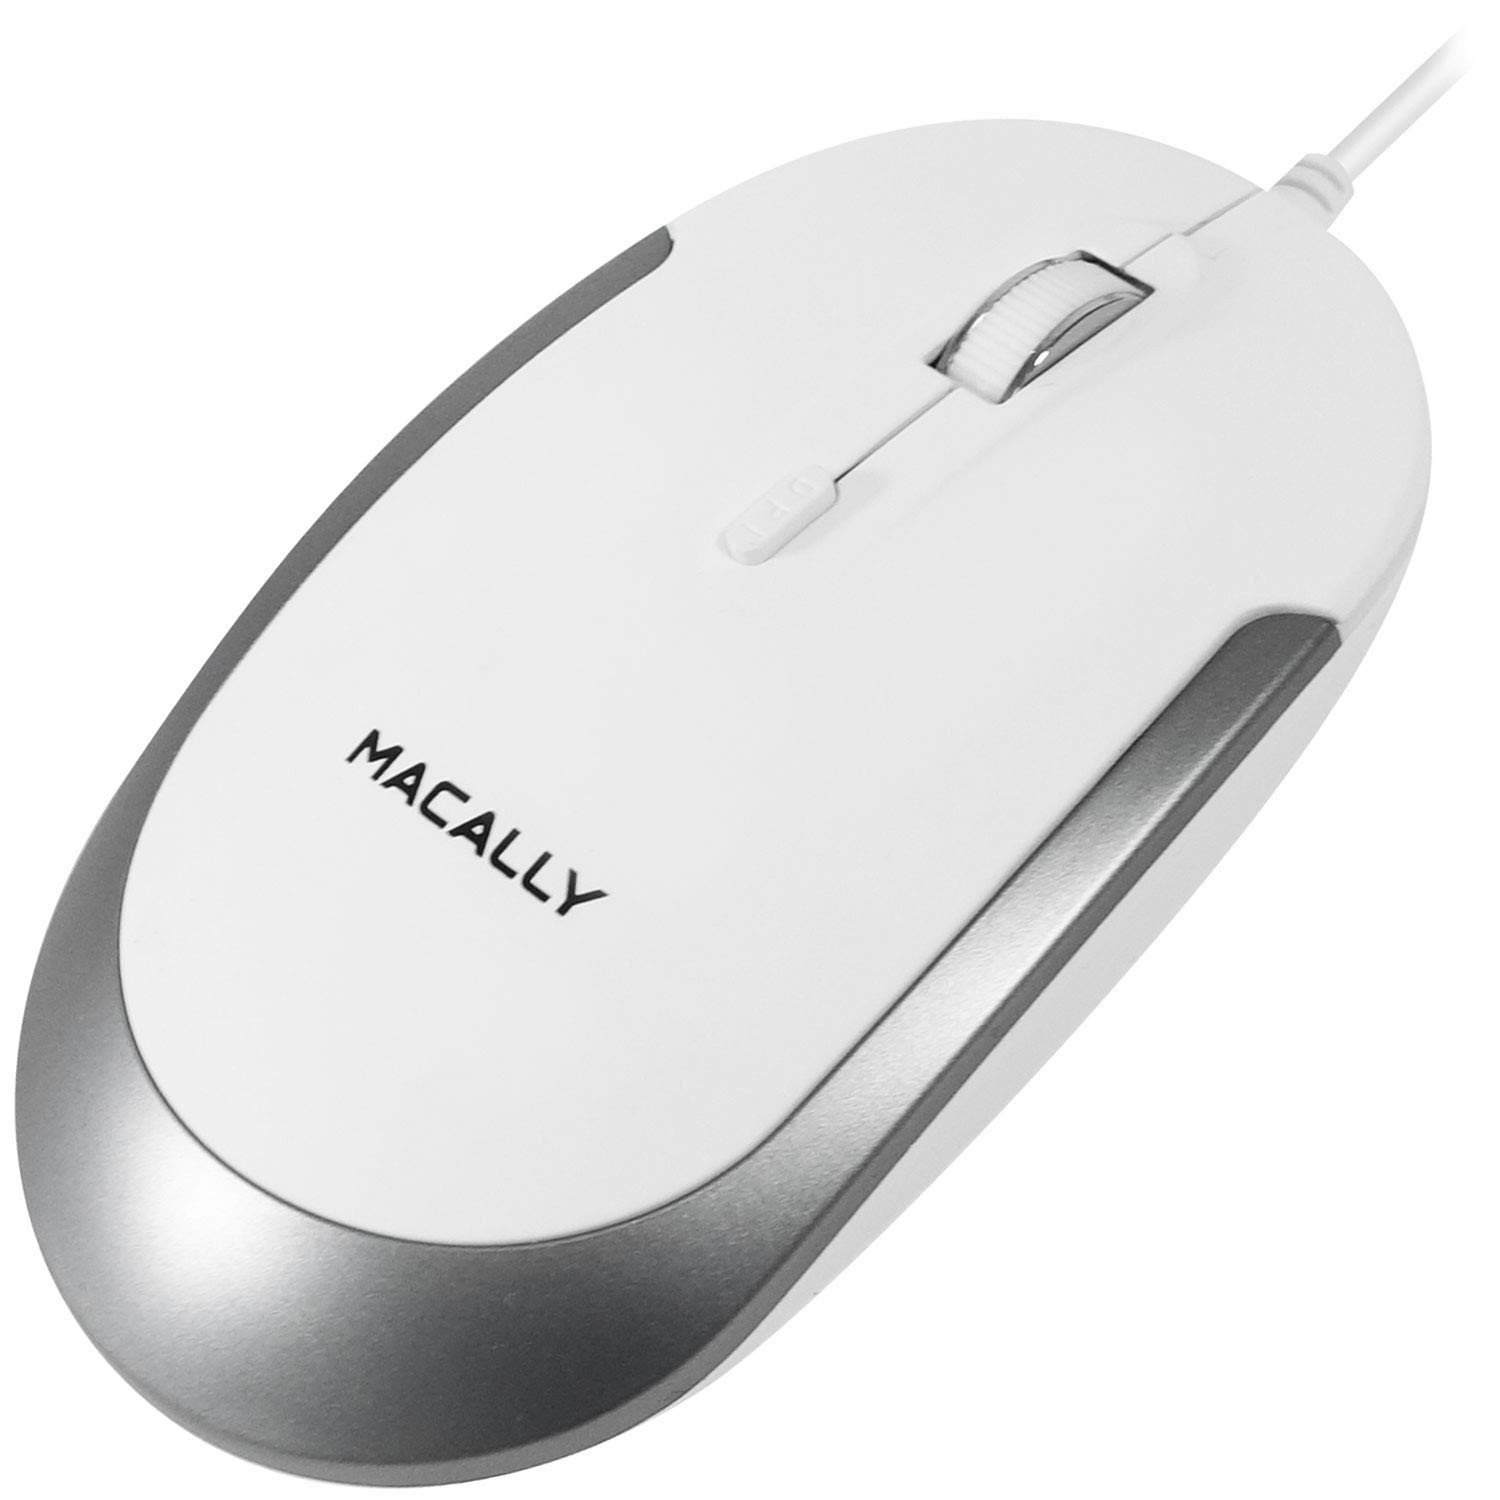 Macally Silent USB Mouse Wired for Apple Mac or Windows PC Laptop/Desktop Computer, Small for Easy Travel  - White, Space Grey, DYNAMOUSE